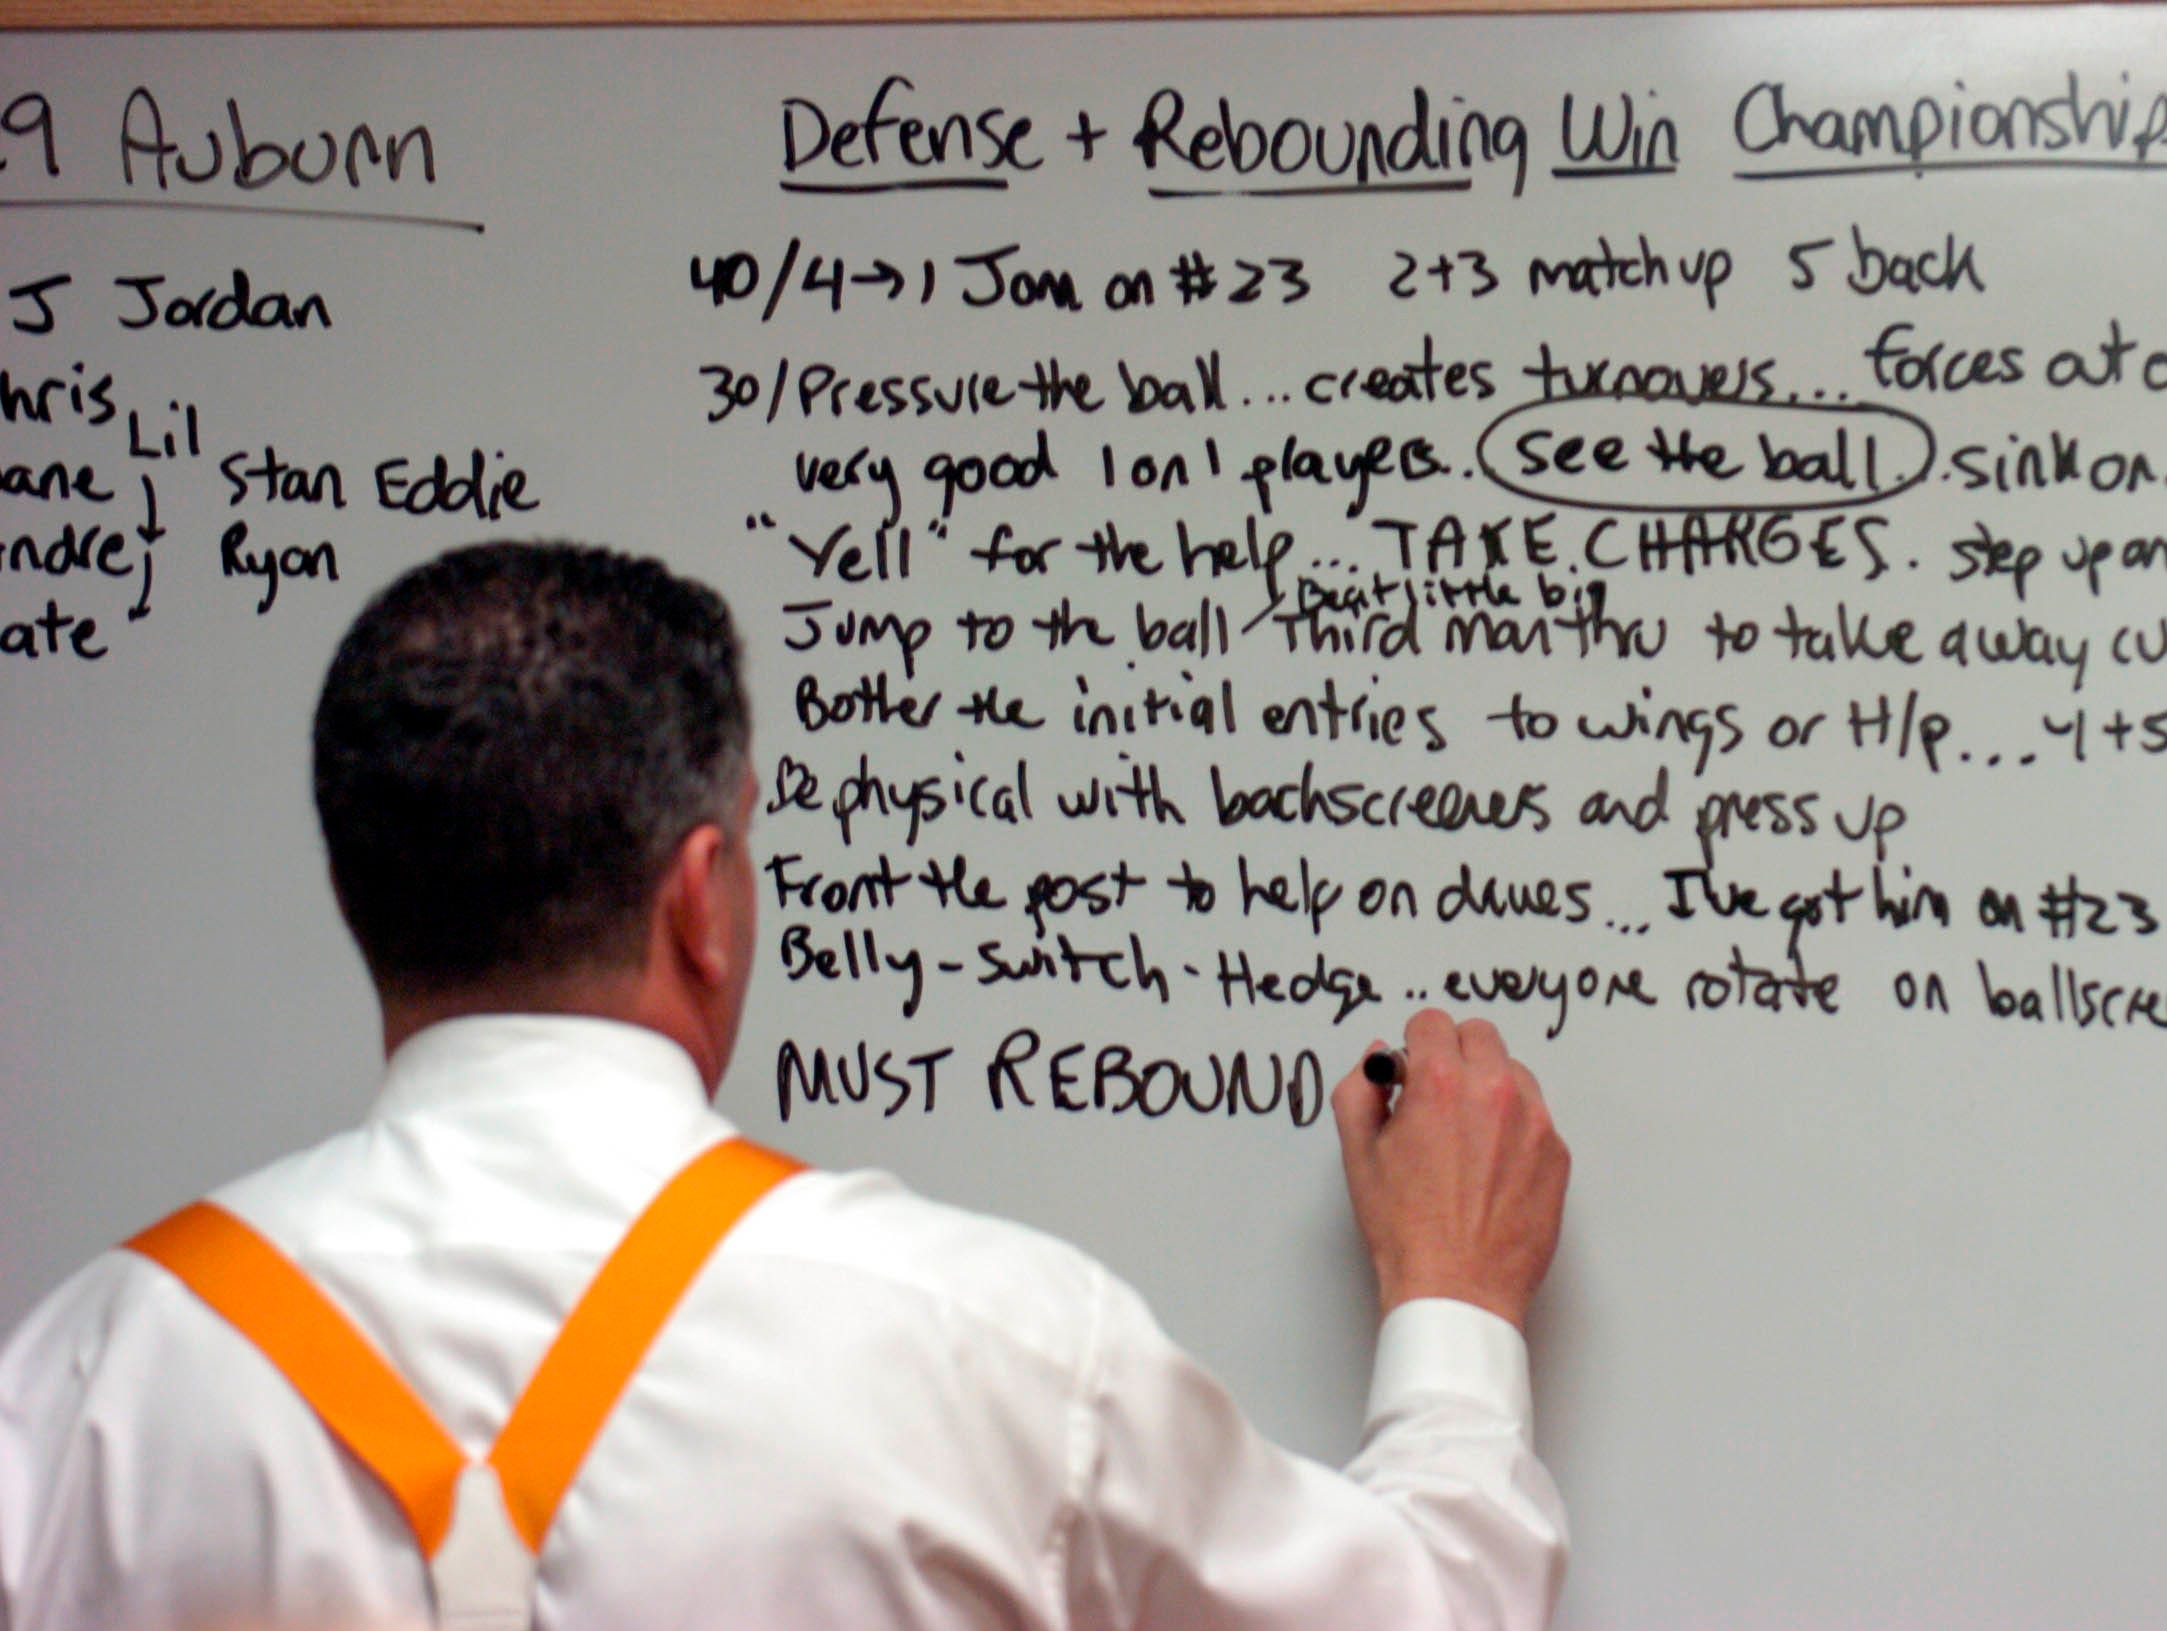 Tennessee basketball coach Bruce Pearl makes notes on the locker room board minutes before gametime. 2006